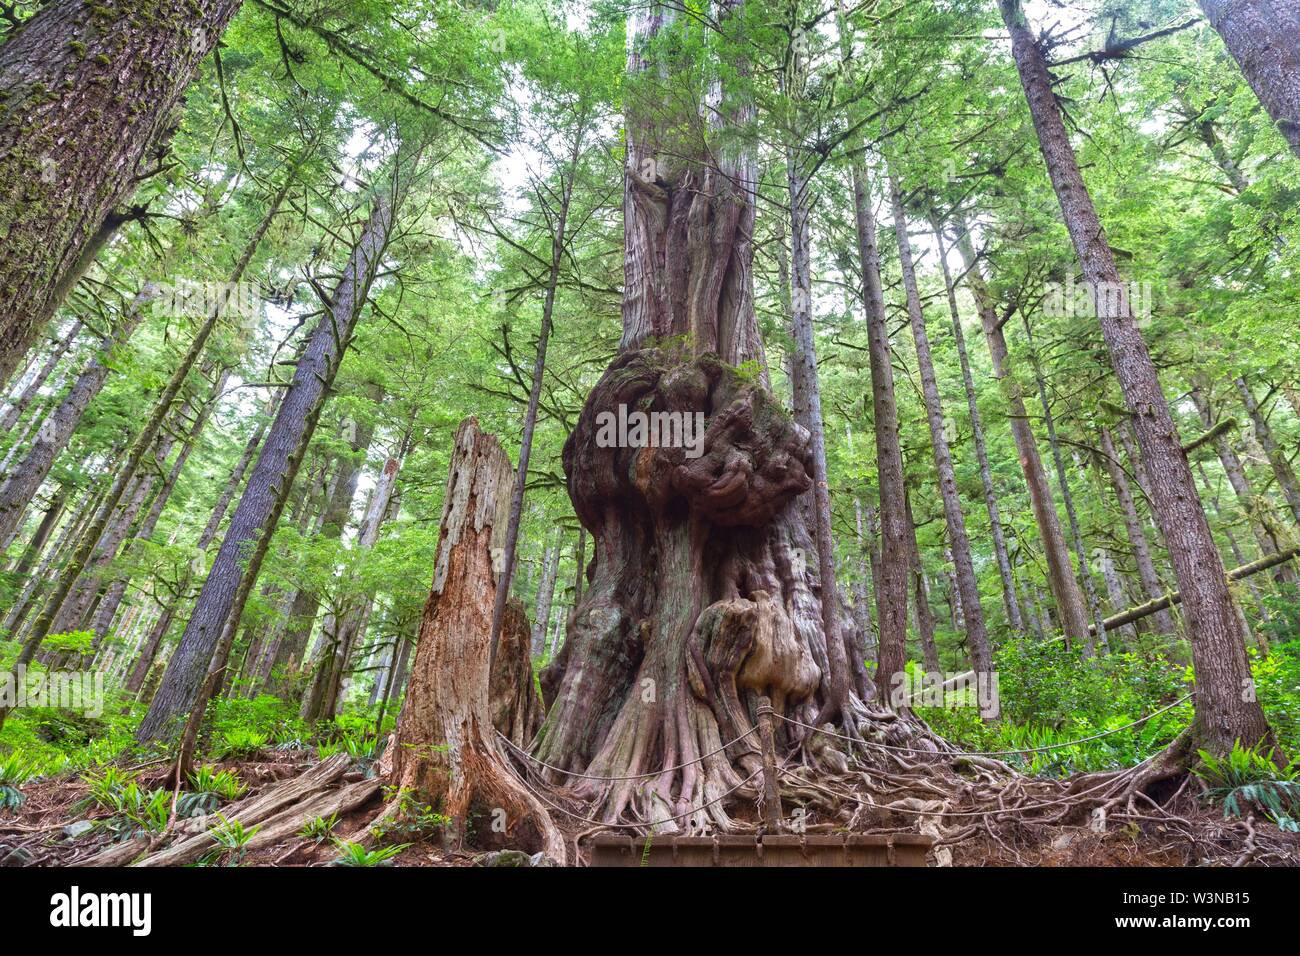 Skyward Perspective of Canada Gnarliest Tree in Giant Western Red Cedar Forest near Port Renfrew, Pacific Northwest Vancouver Island BC Canadai Stock Photo